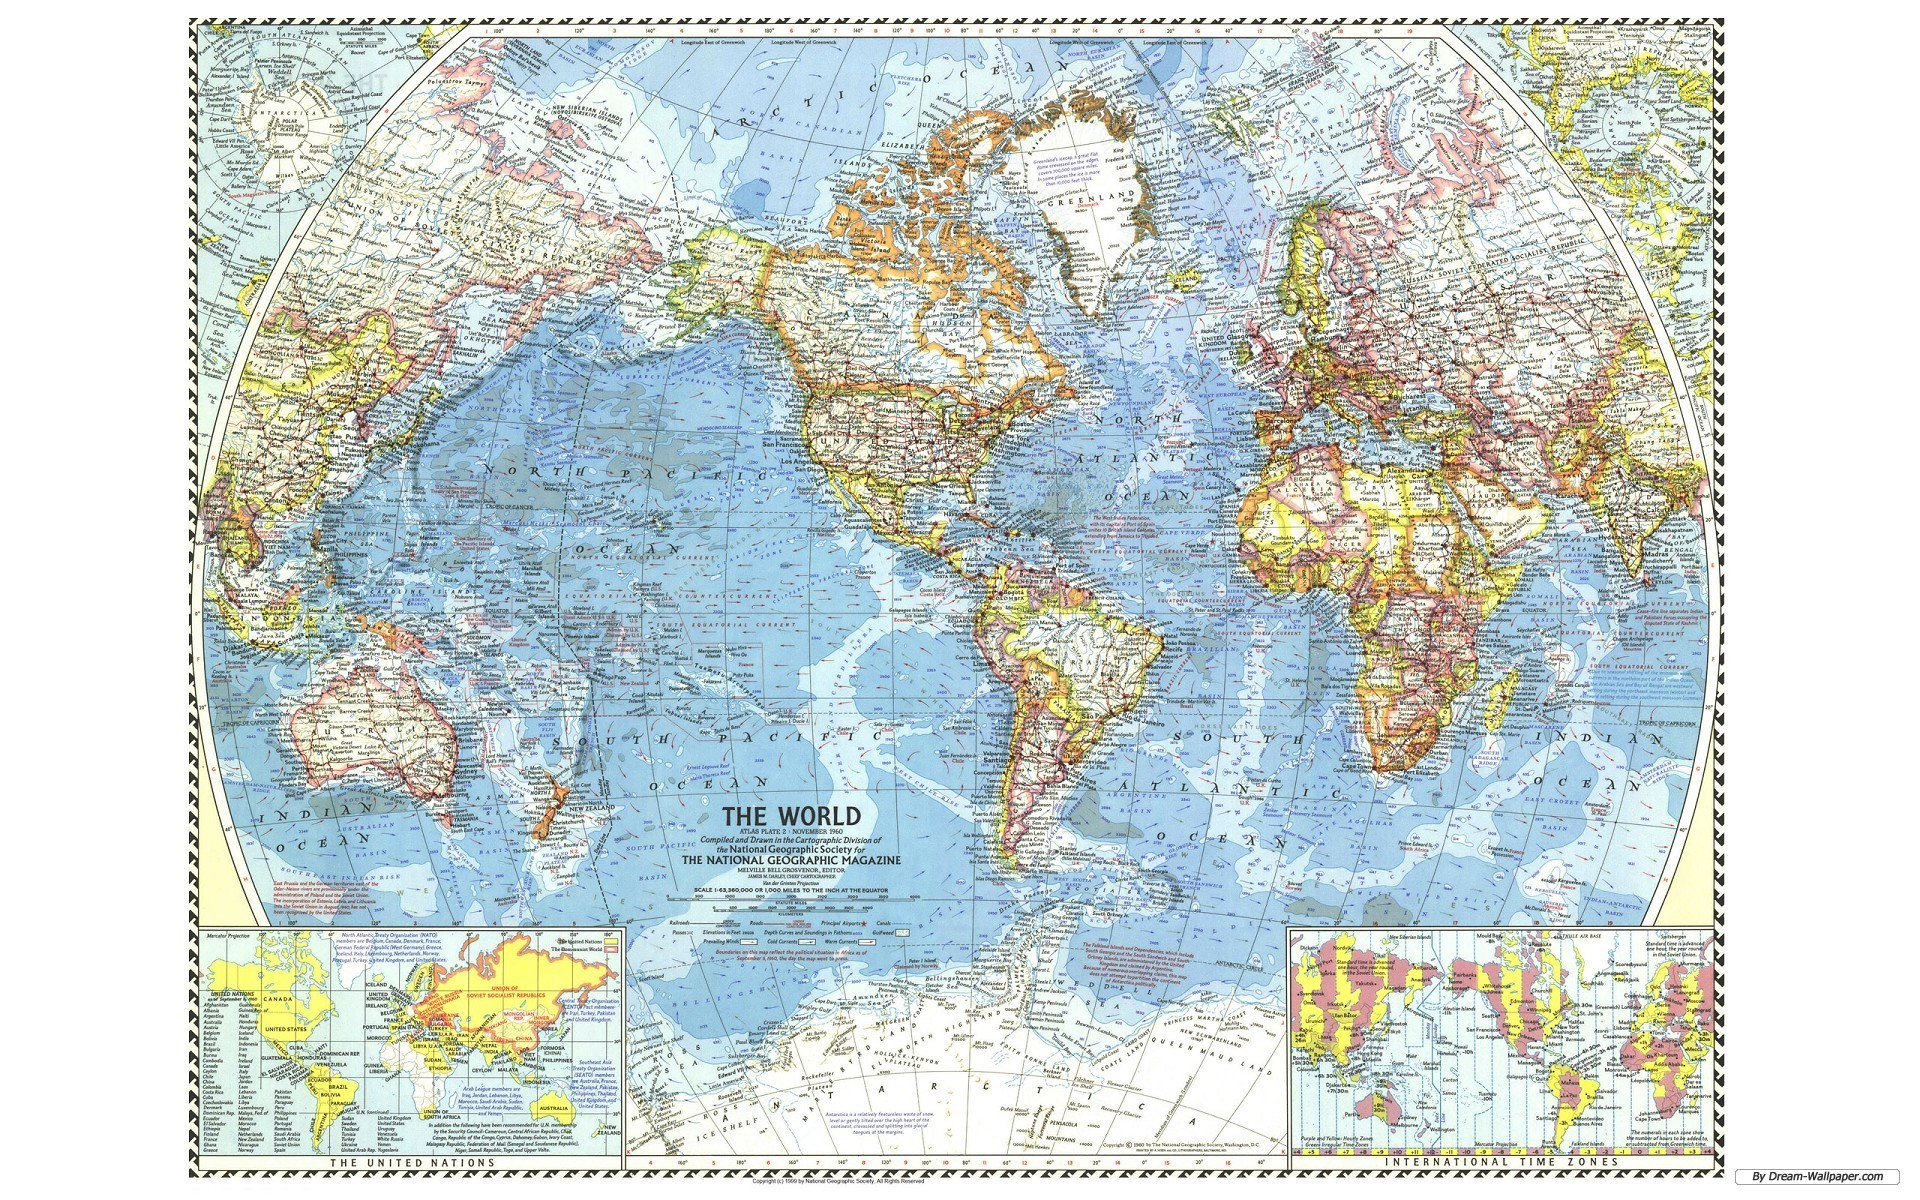 Wallpaper of world map 62 images 1920x1200 runescape runescape world map widescreen wallpaper download gumiabroncs Gallery